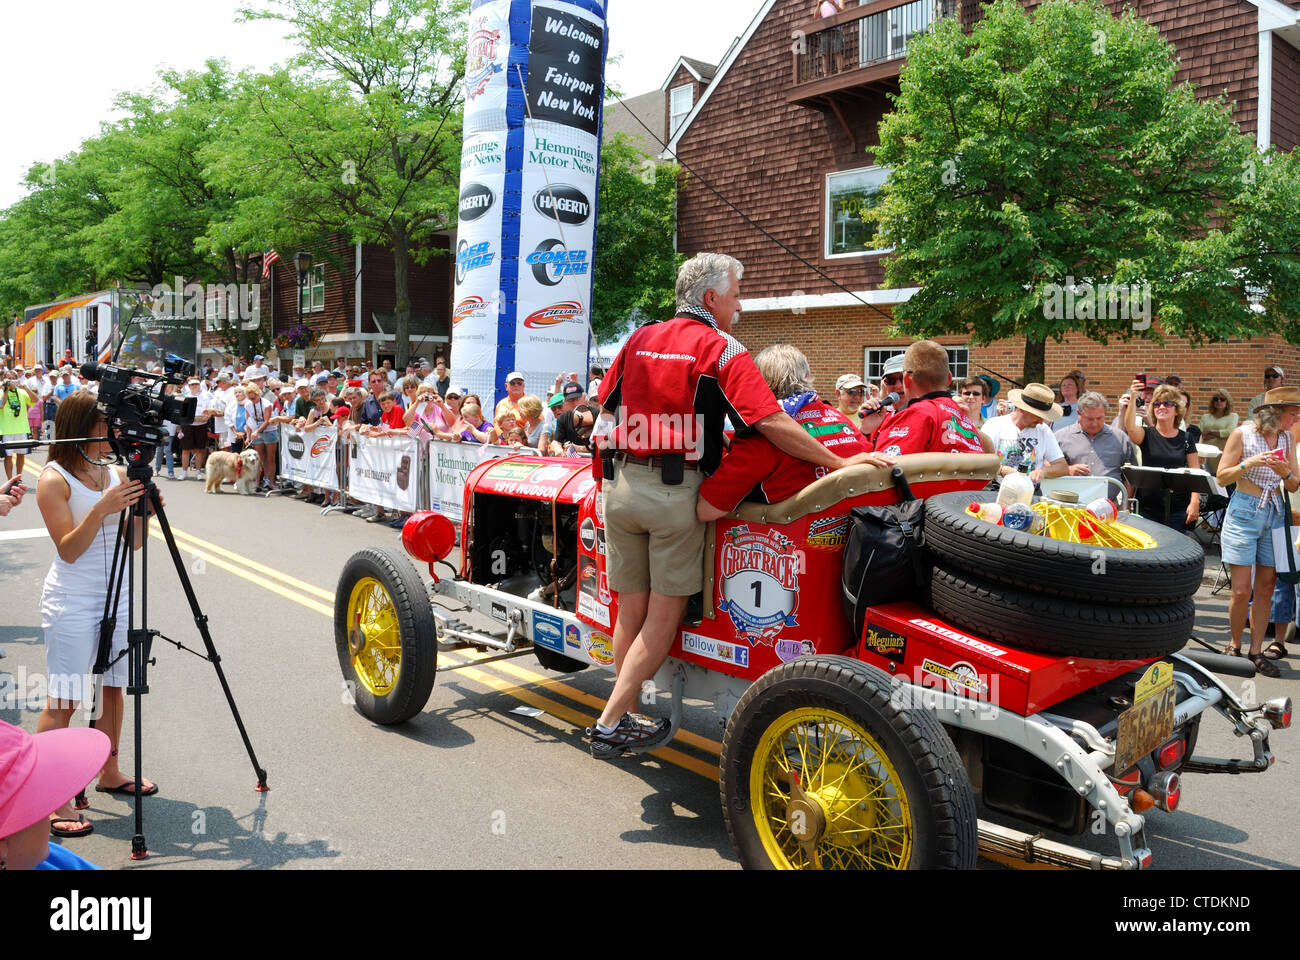 Car No 1 driven by local merchant crosses Fairport leg of The Great Race around the Great Lakes - Stock Image